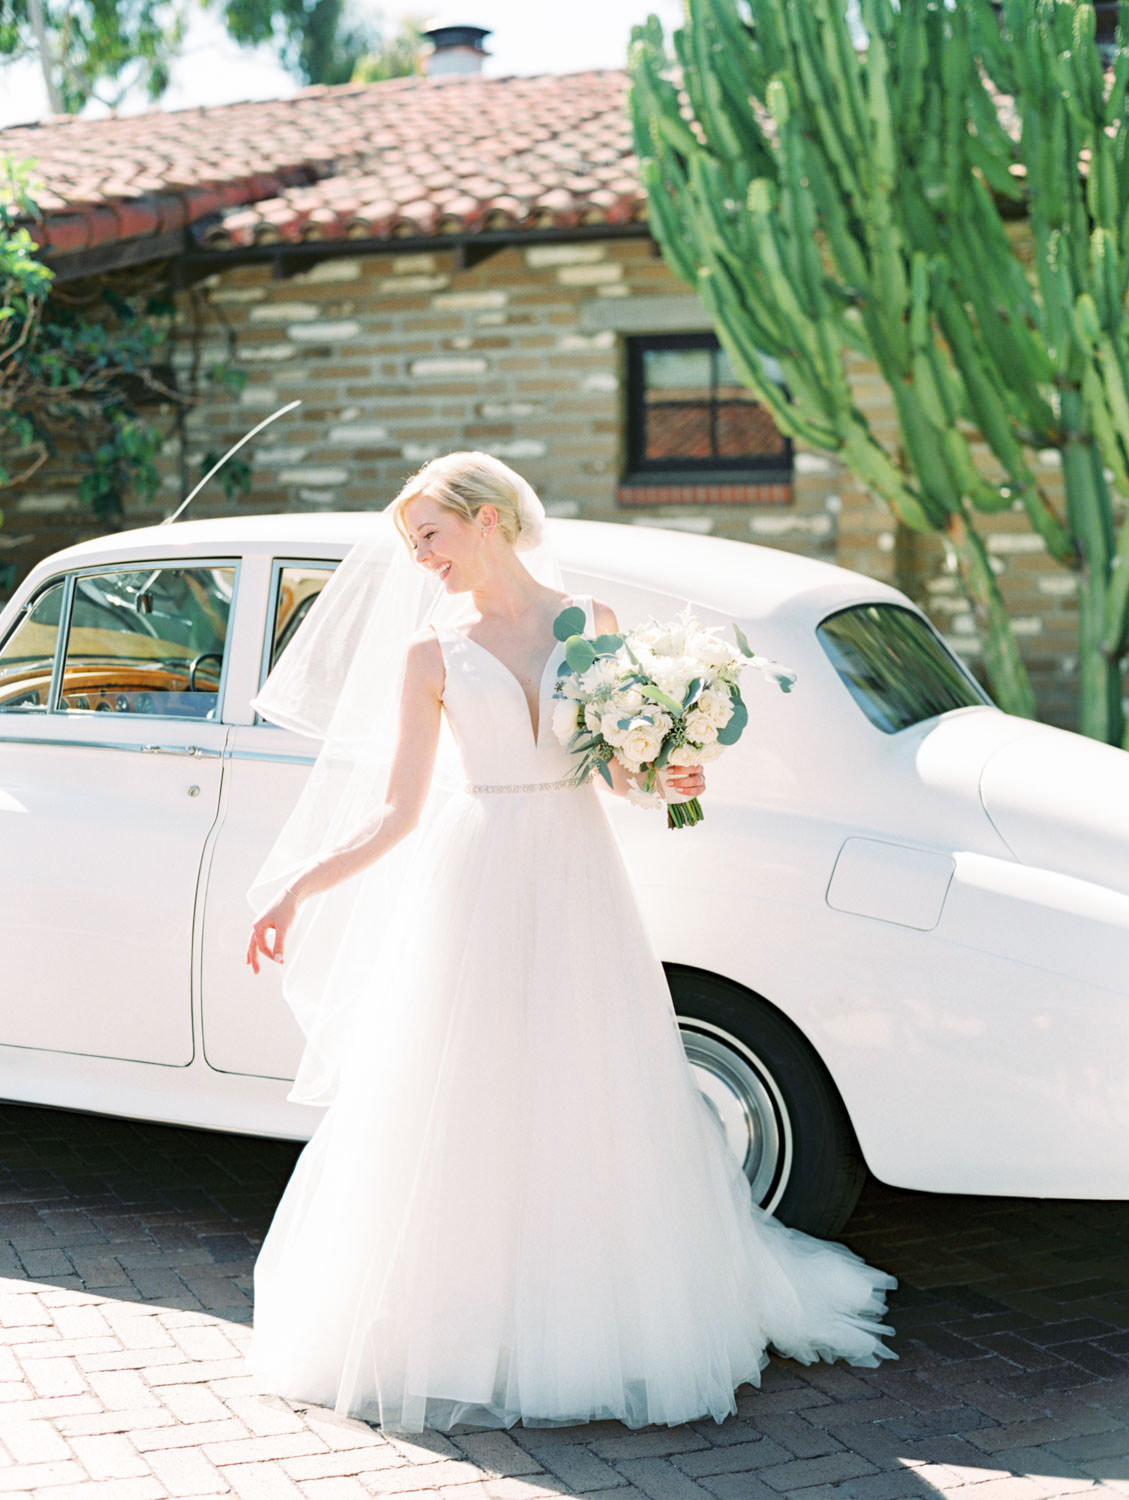 Bride in white vintage Rolls Royce with dahlia and rose ivory bouquet with silver dollar eucalyptus. La Jolla wedding shot on film by Cavin Elizabeth Photography